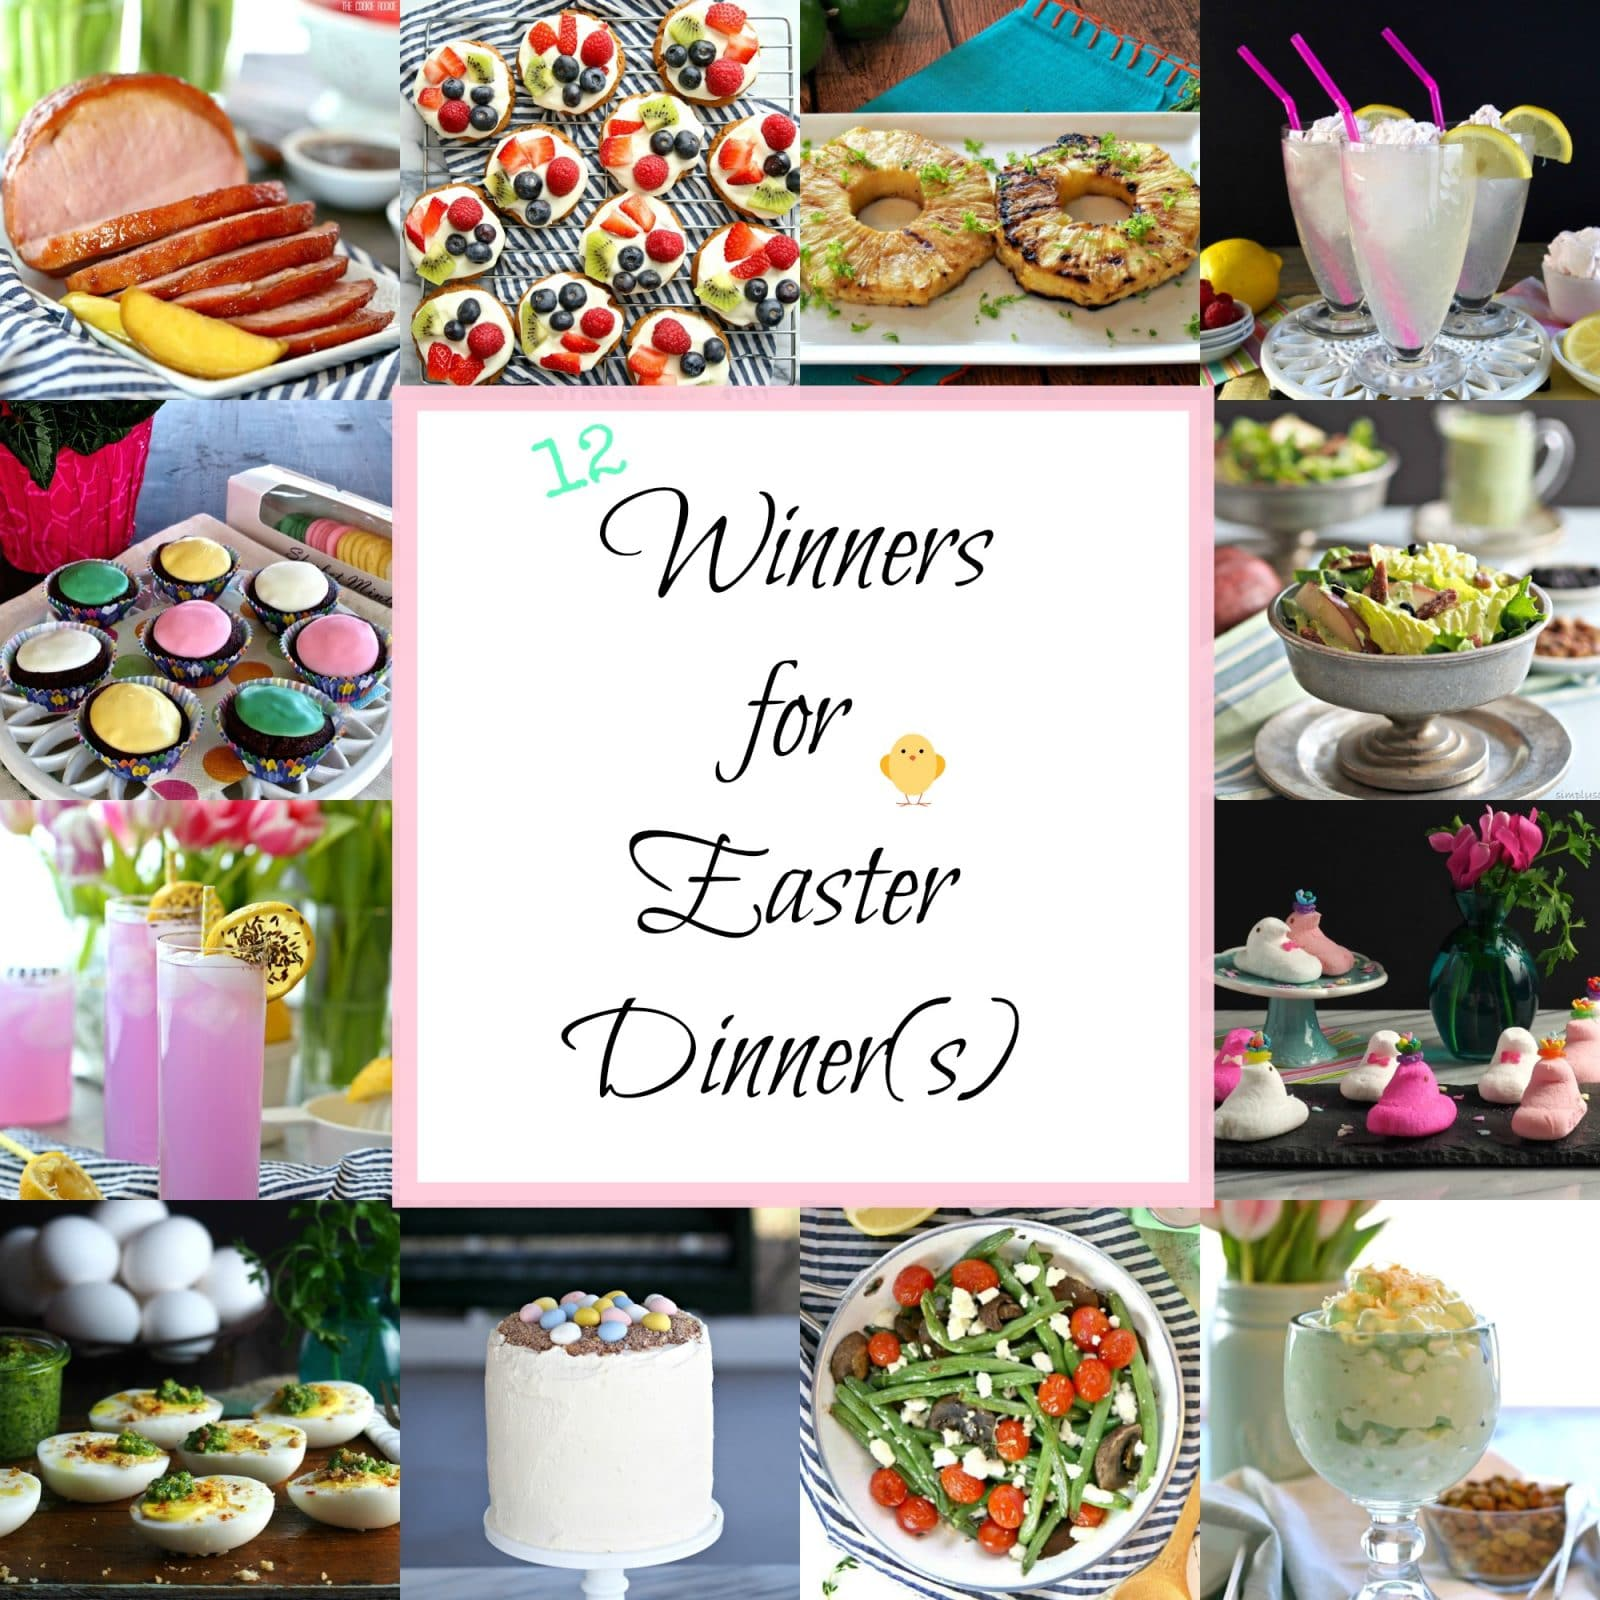 12 Winners For Easter Dinner S Twelve Winning Recipes From Drinks To Desserts